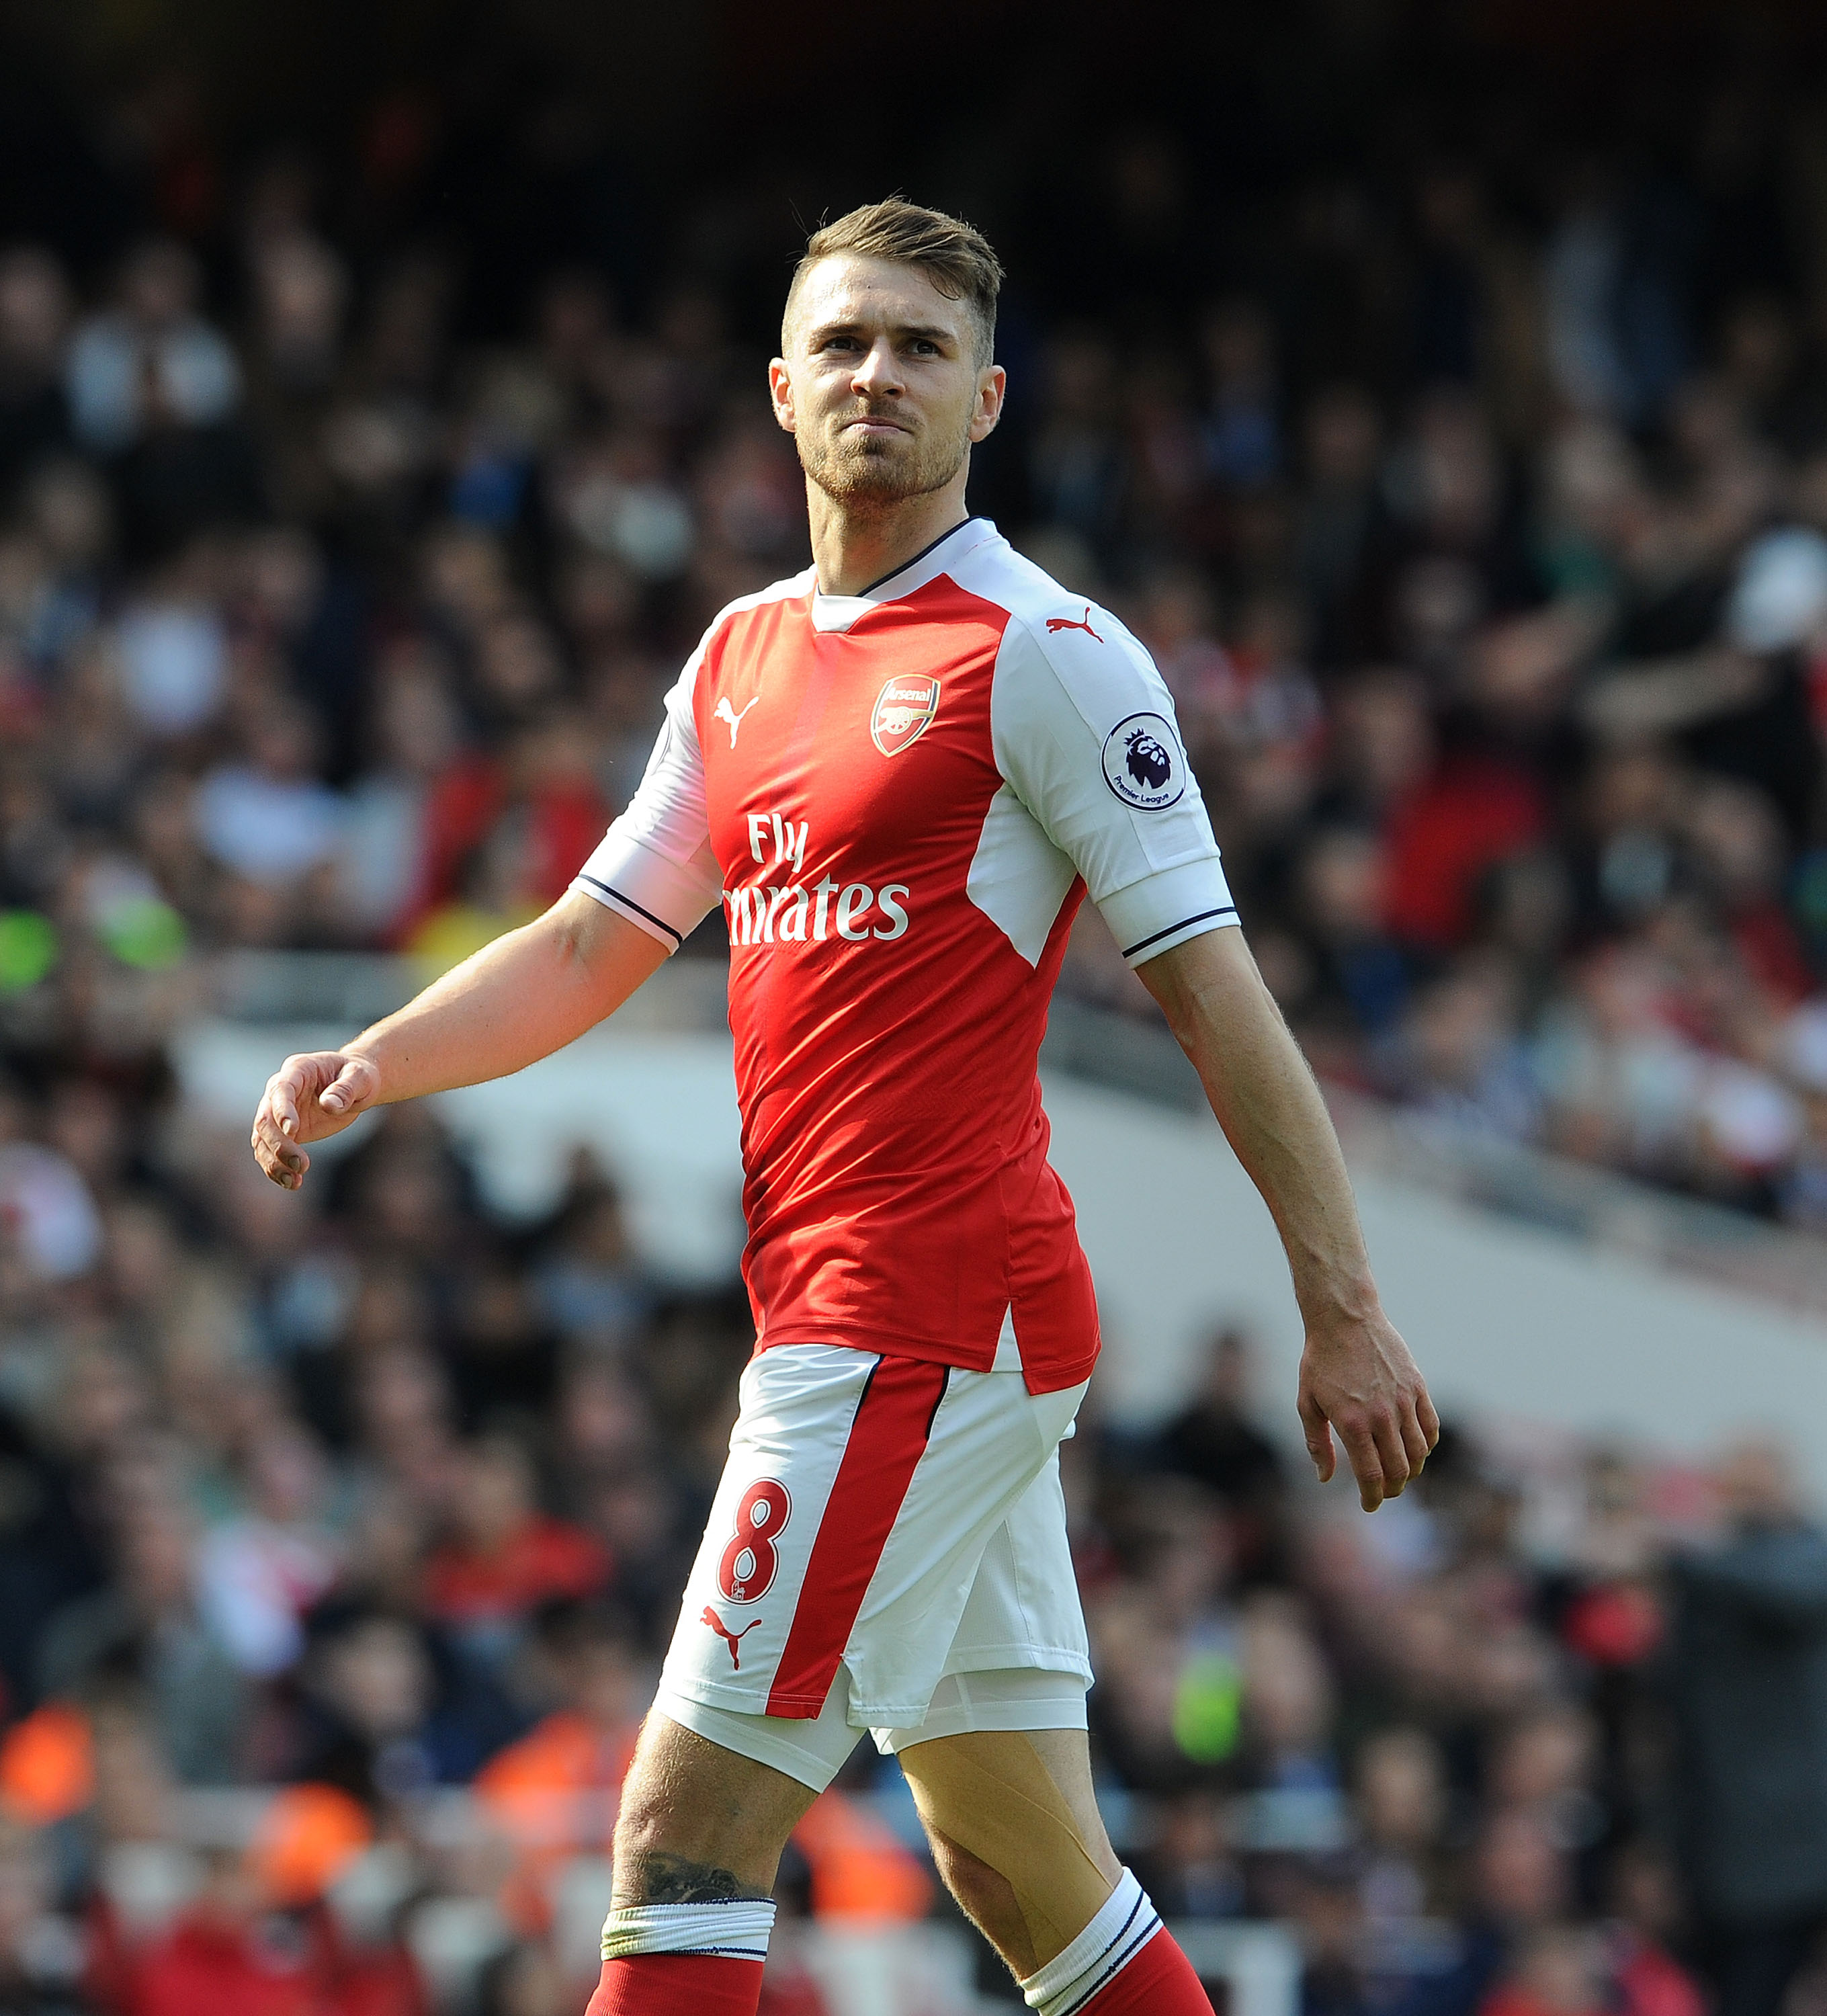 Arsenal: Aaron Ramsey closing book with poetic justice